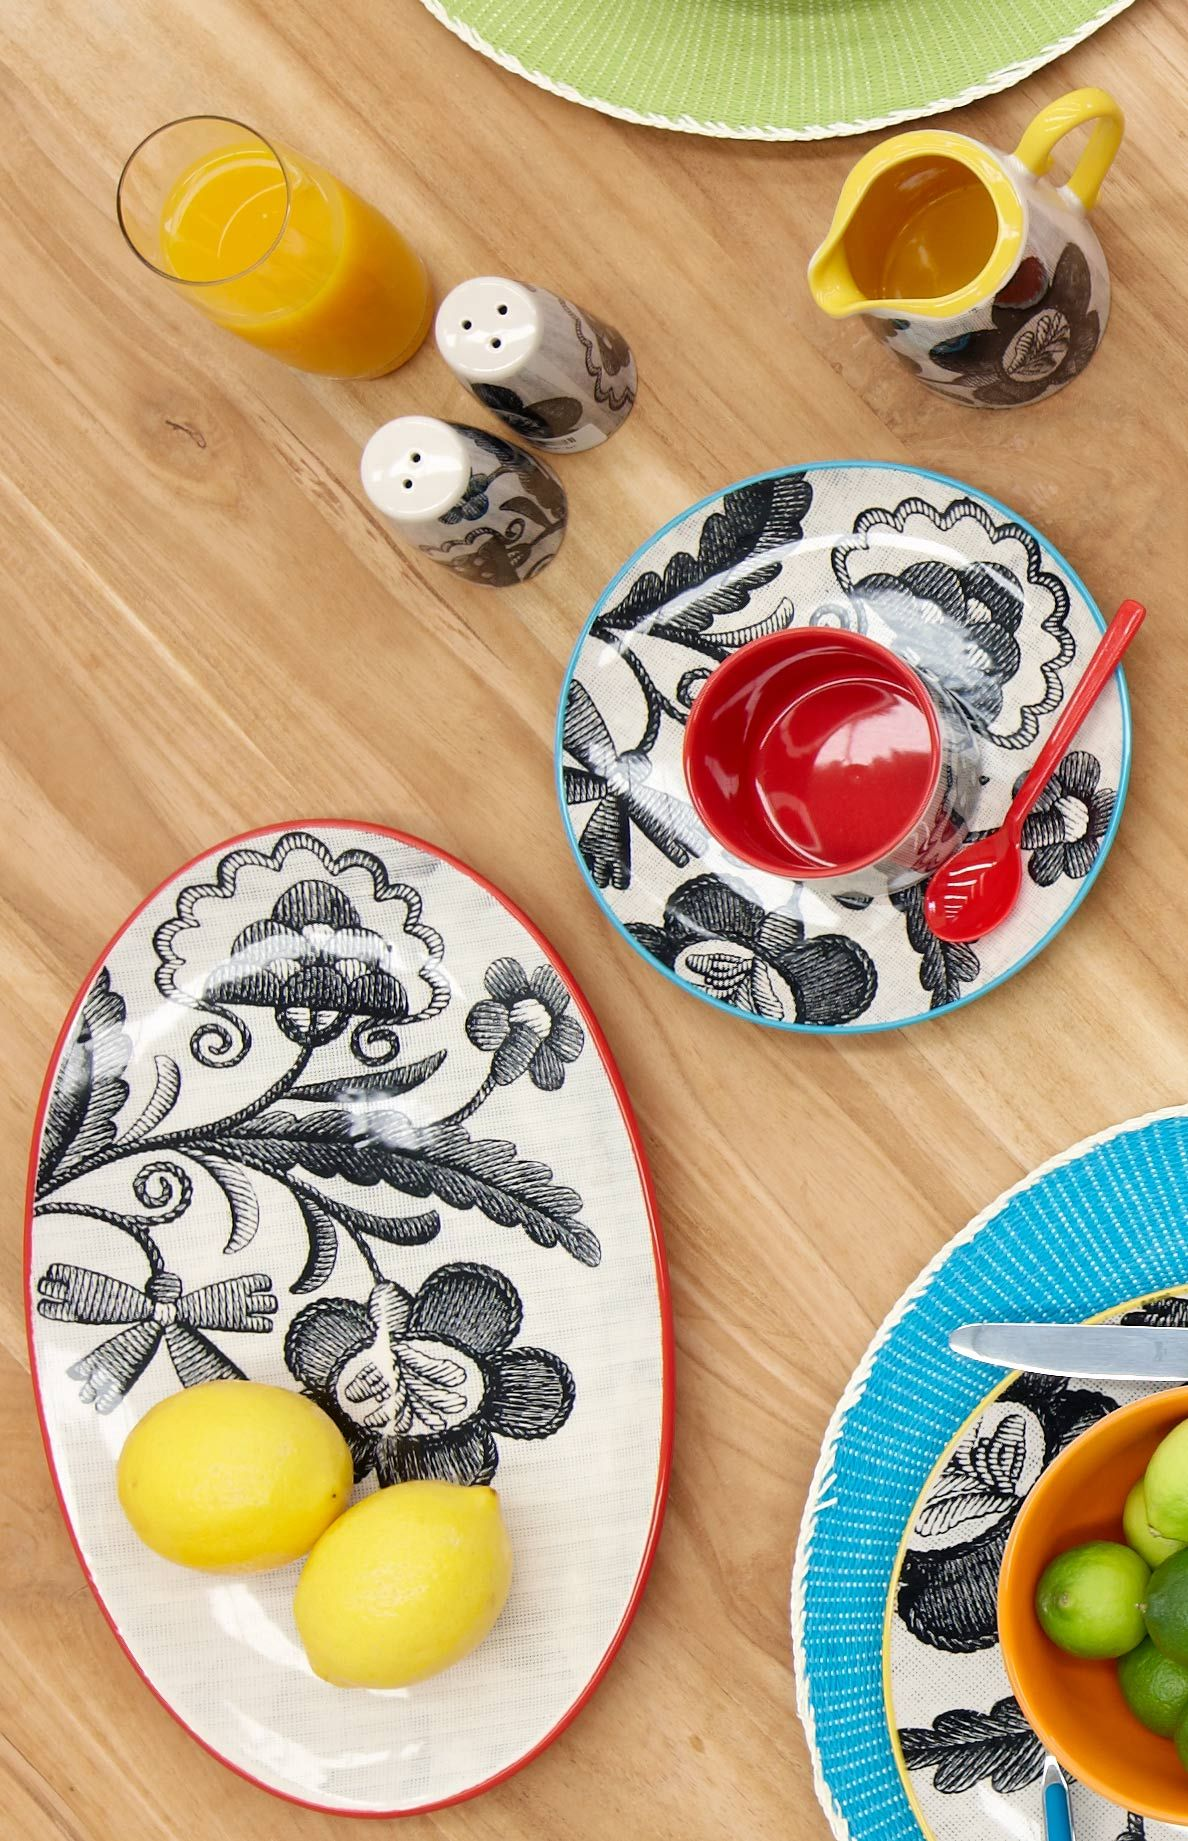 Linea dinnerware fun by Me u0026 My Trend  sc 1 st  Pinterest & Linea dinnerware fun by Me u0026 My Trend | t r e n d // patterned ...